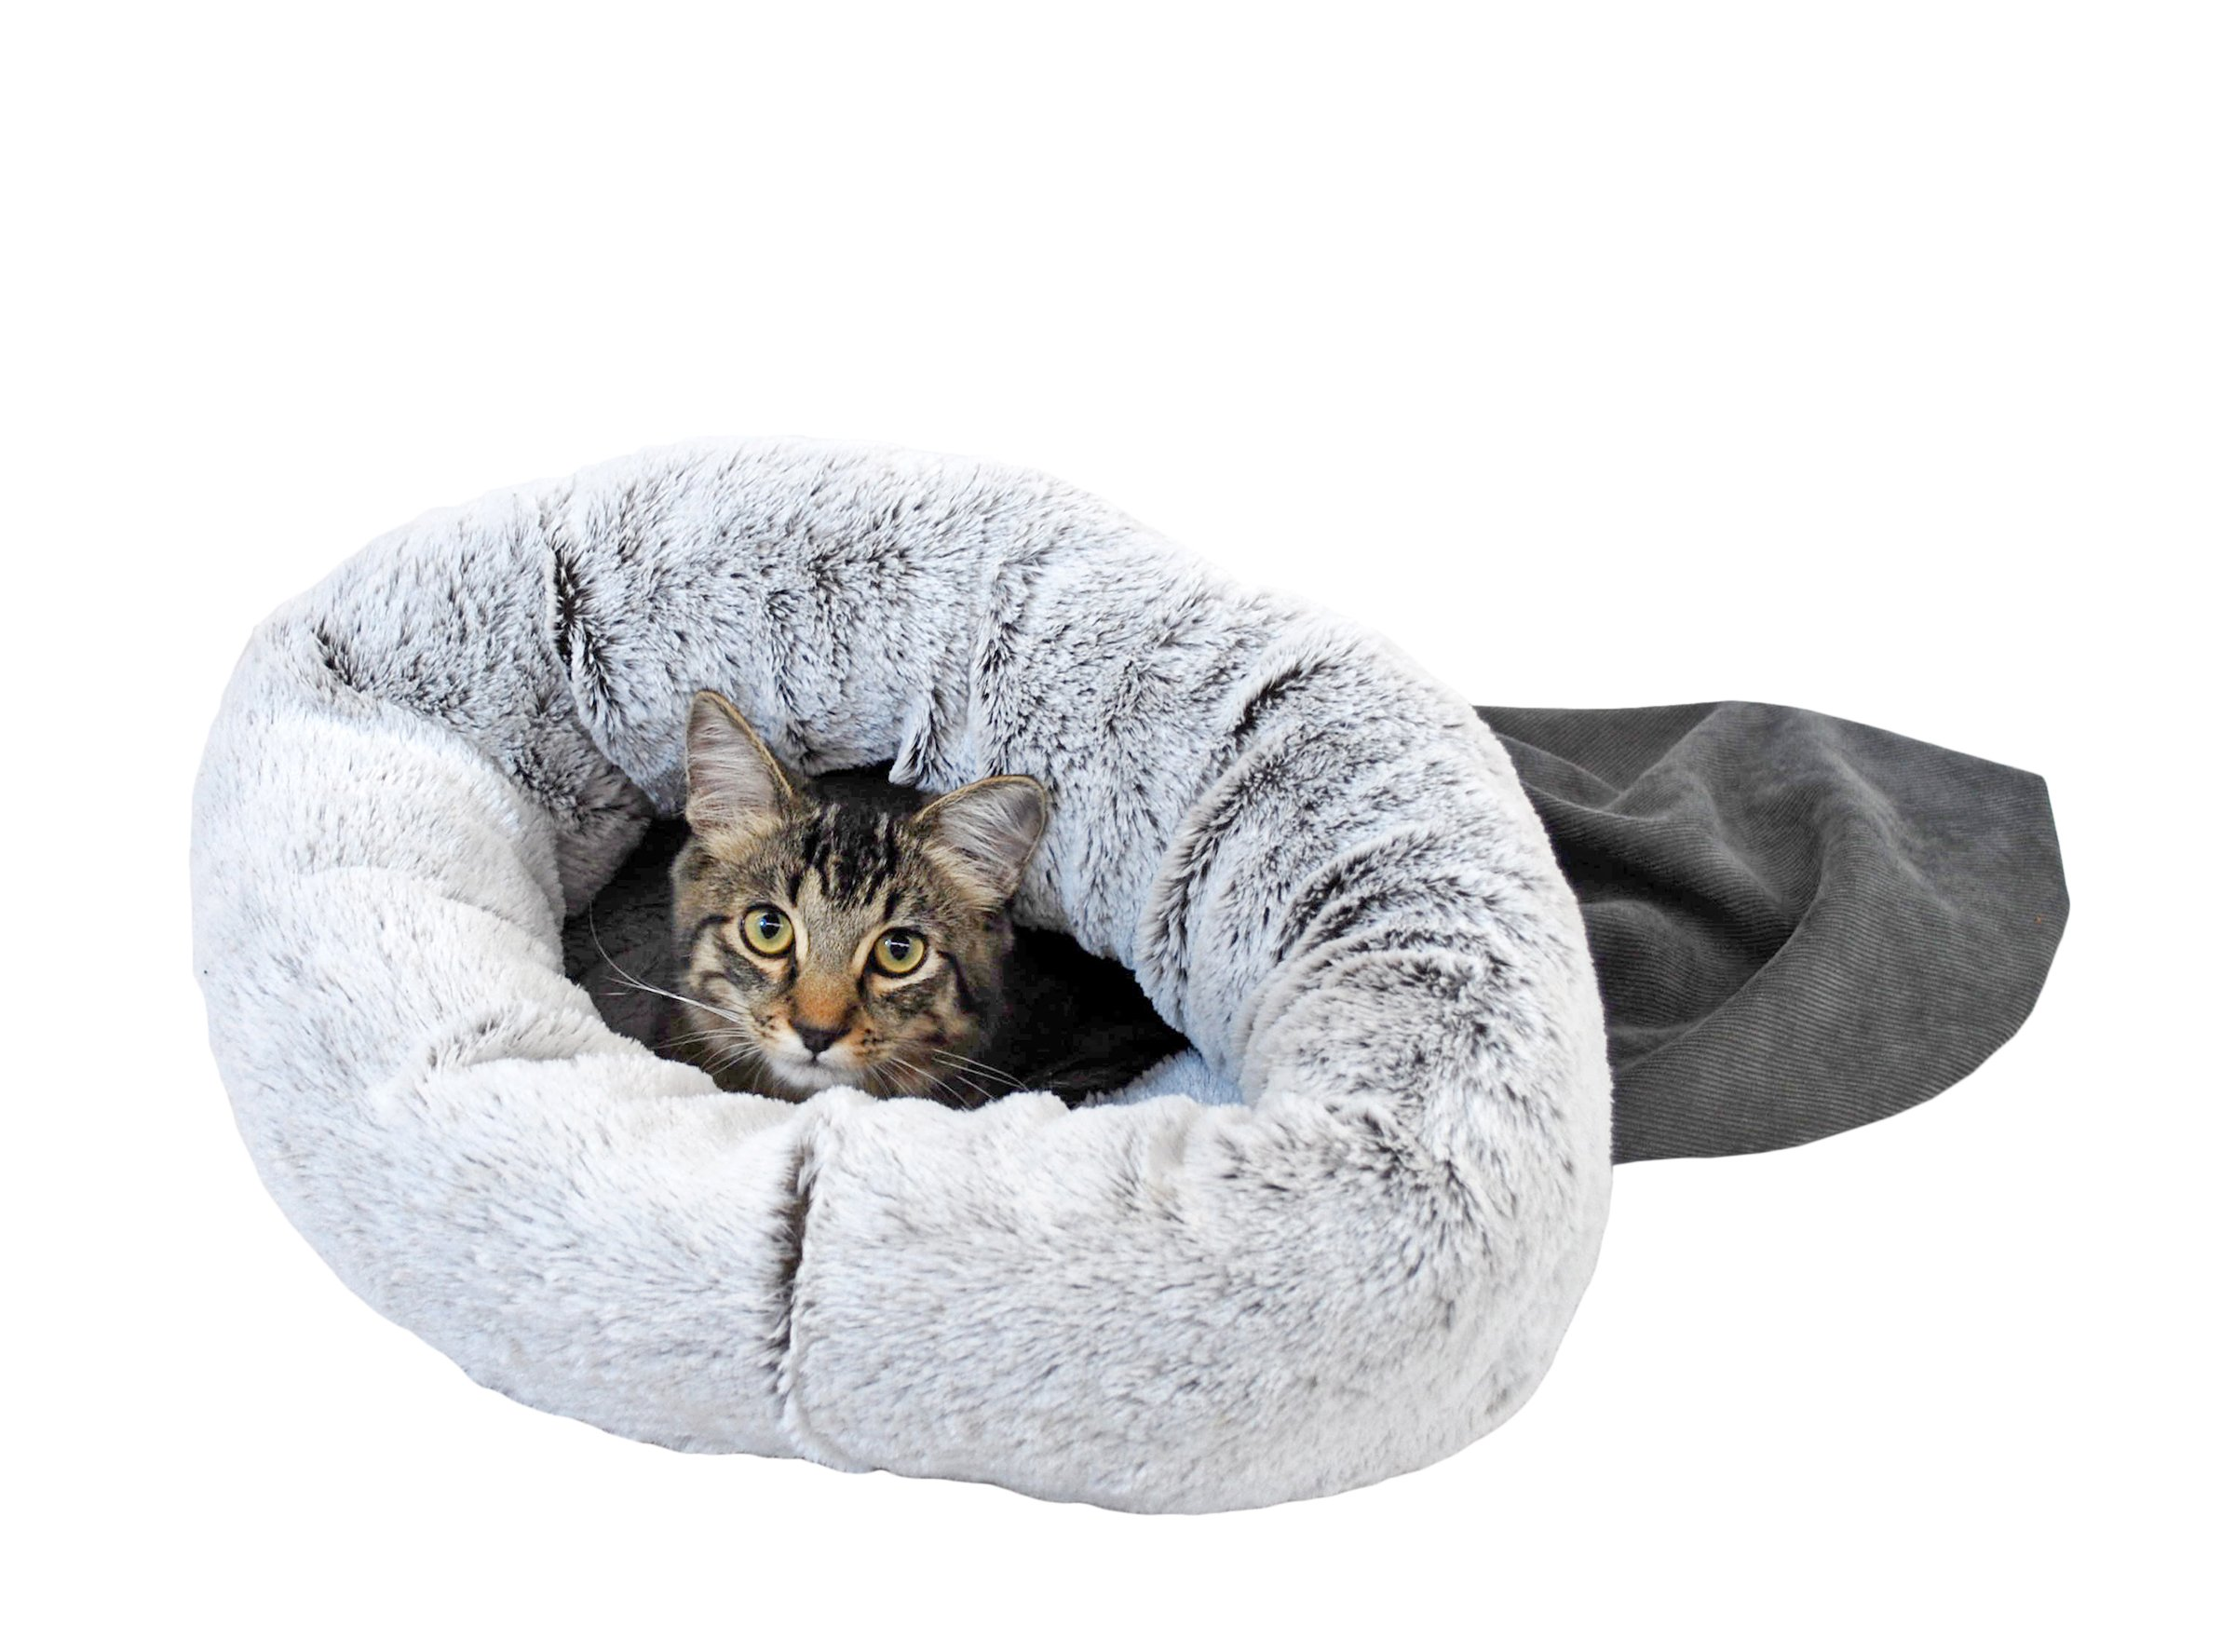 STUFT R2P Group 2412-025 Snuggle Sack Pewter Pet Bed, Large